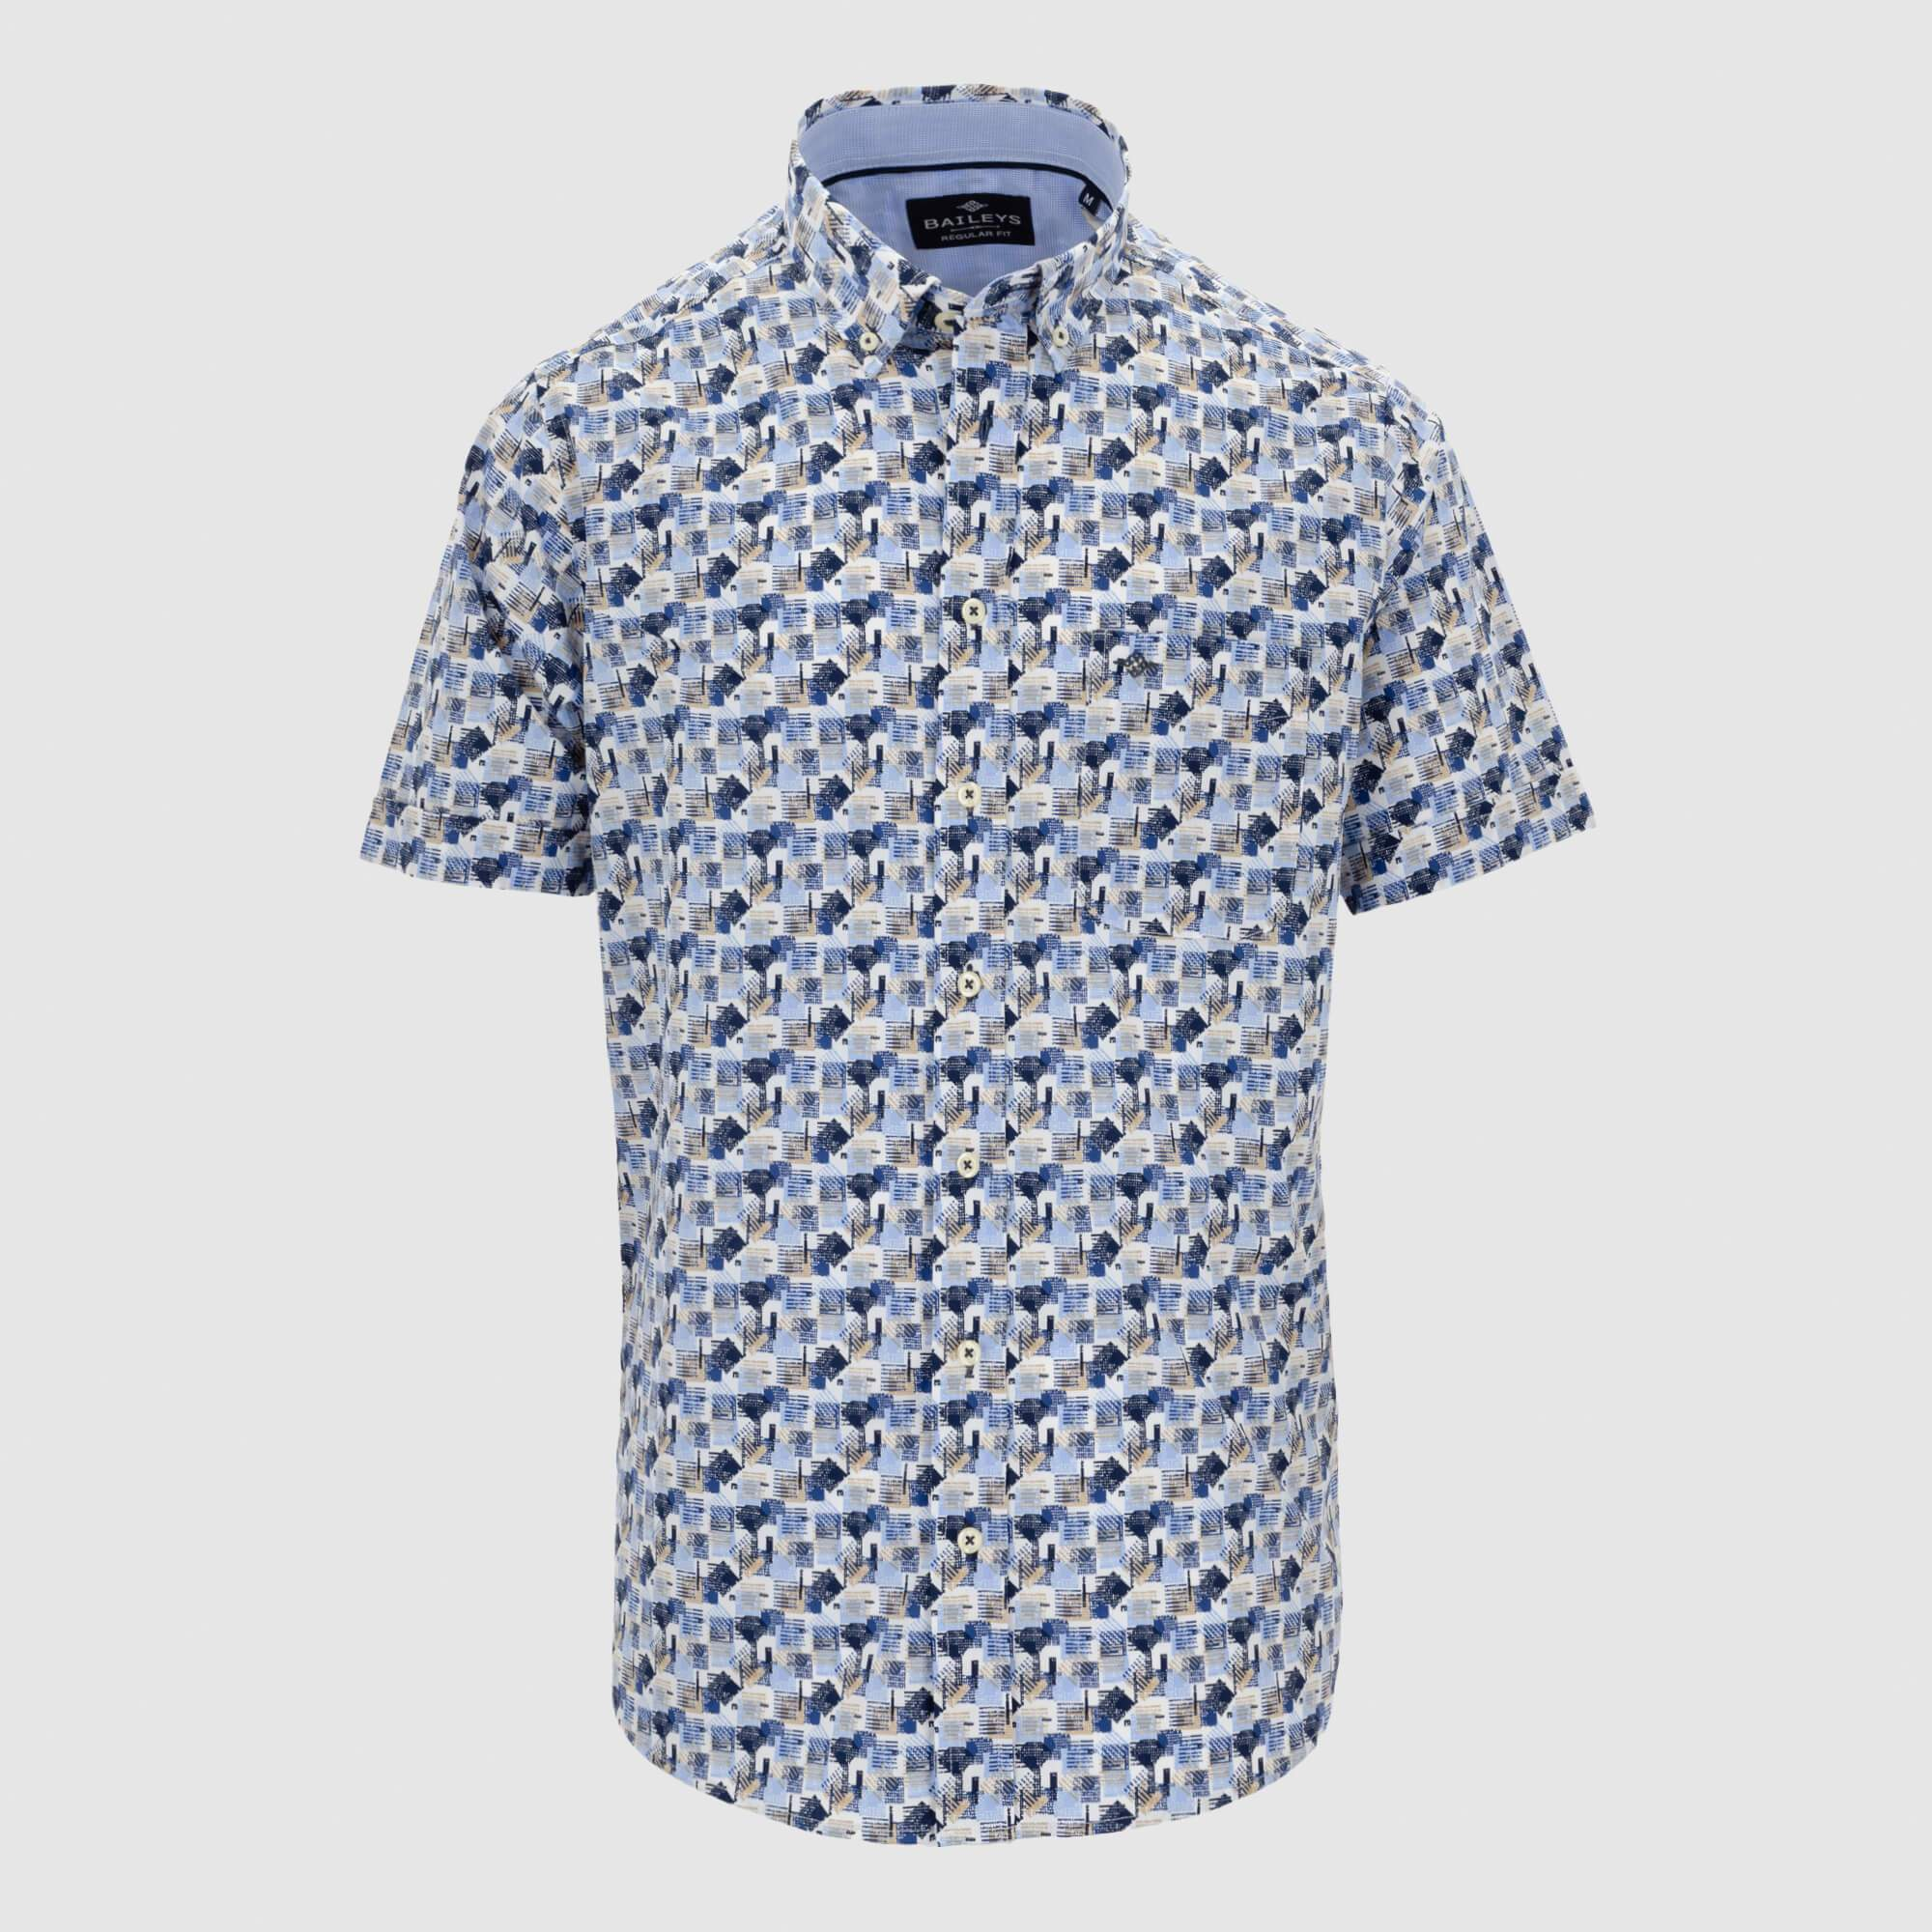 Camisa estampada manga corta regular fit 106696